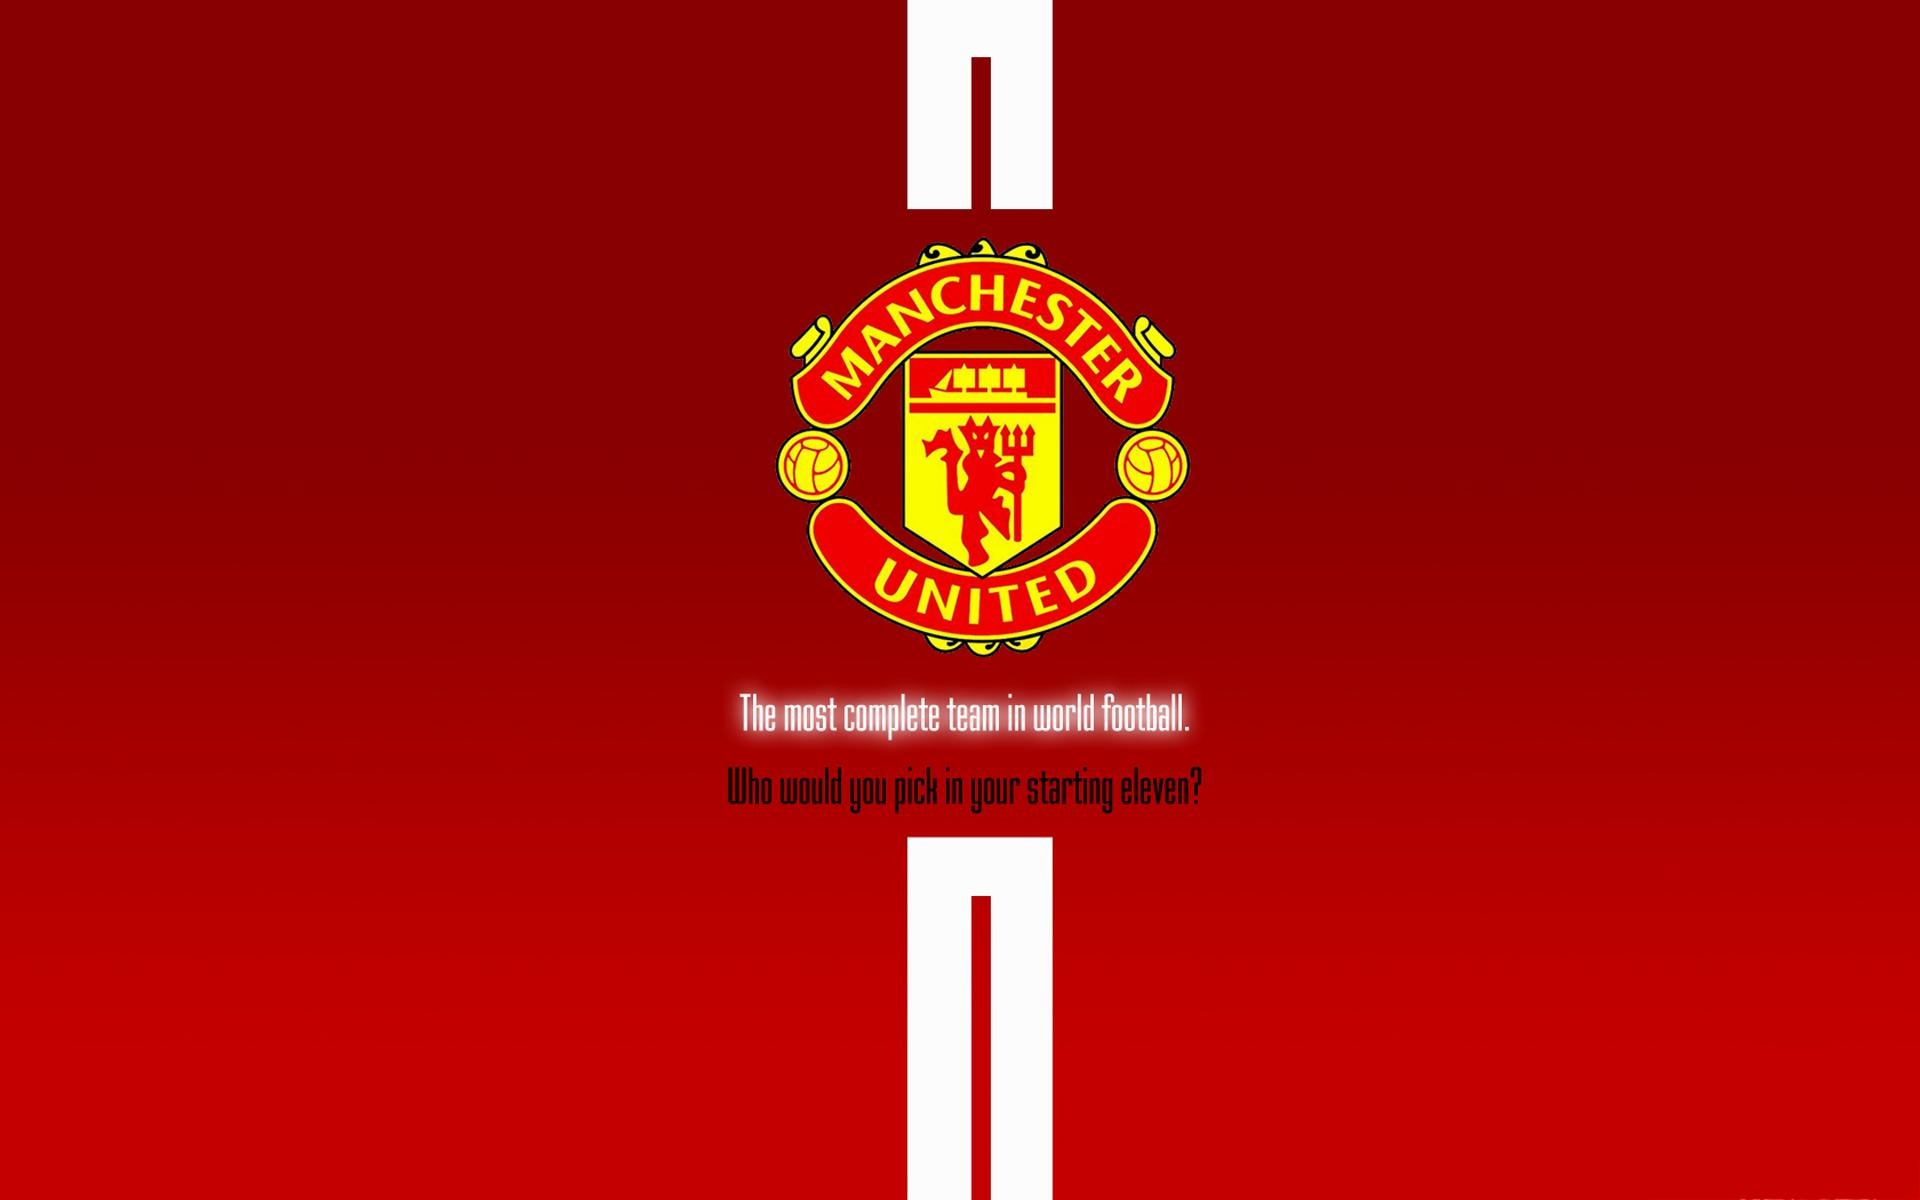 1920x1200 manchester united logo wallpaper download